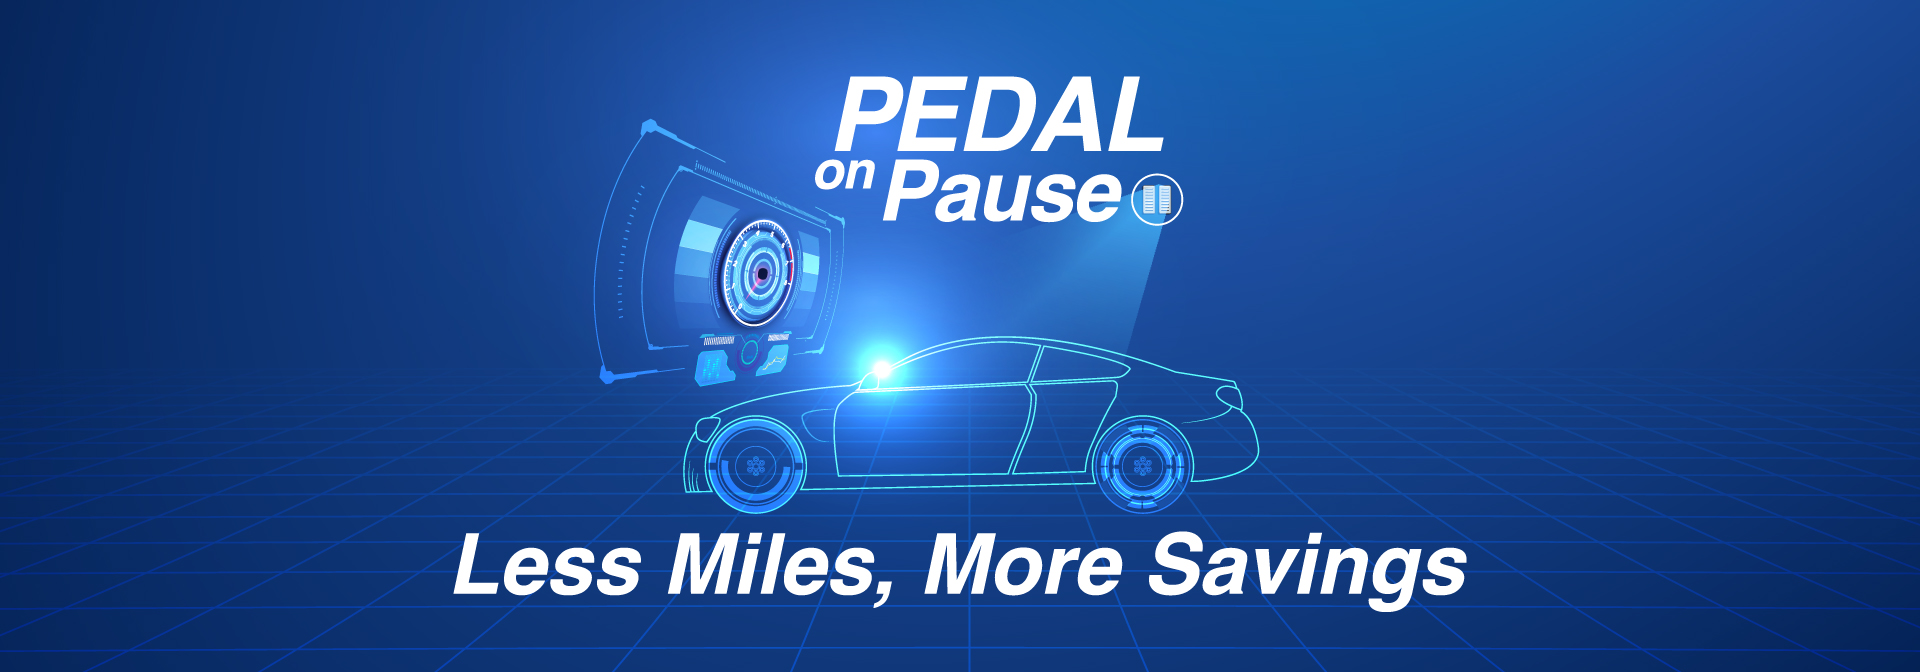 Pedal on Pause